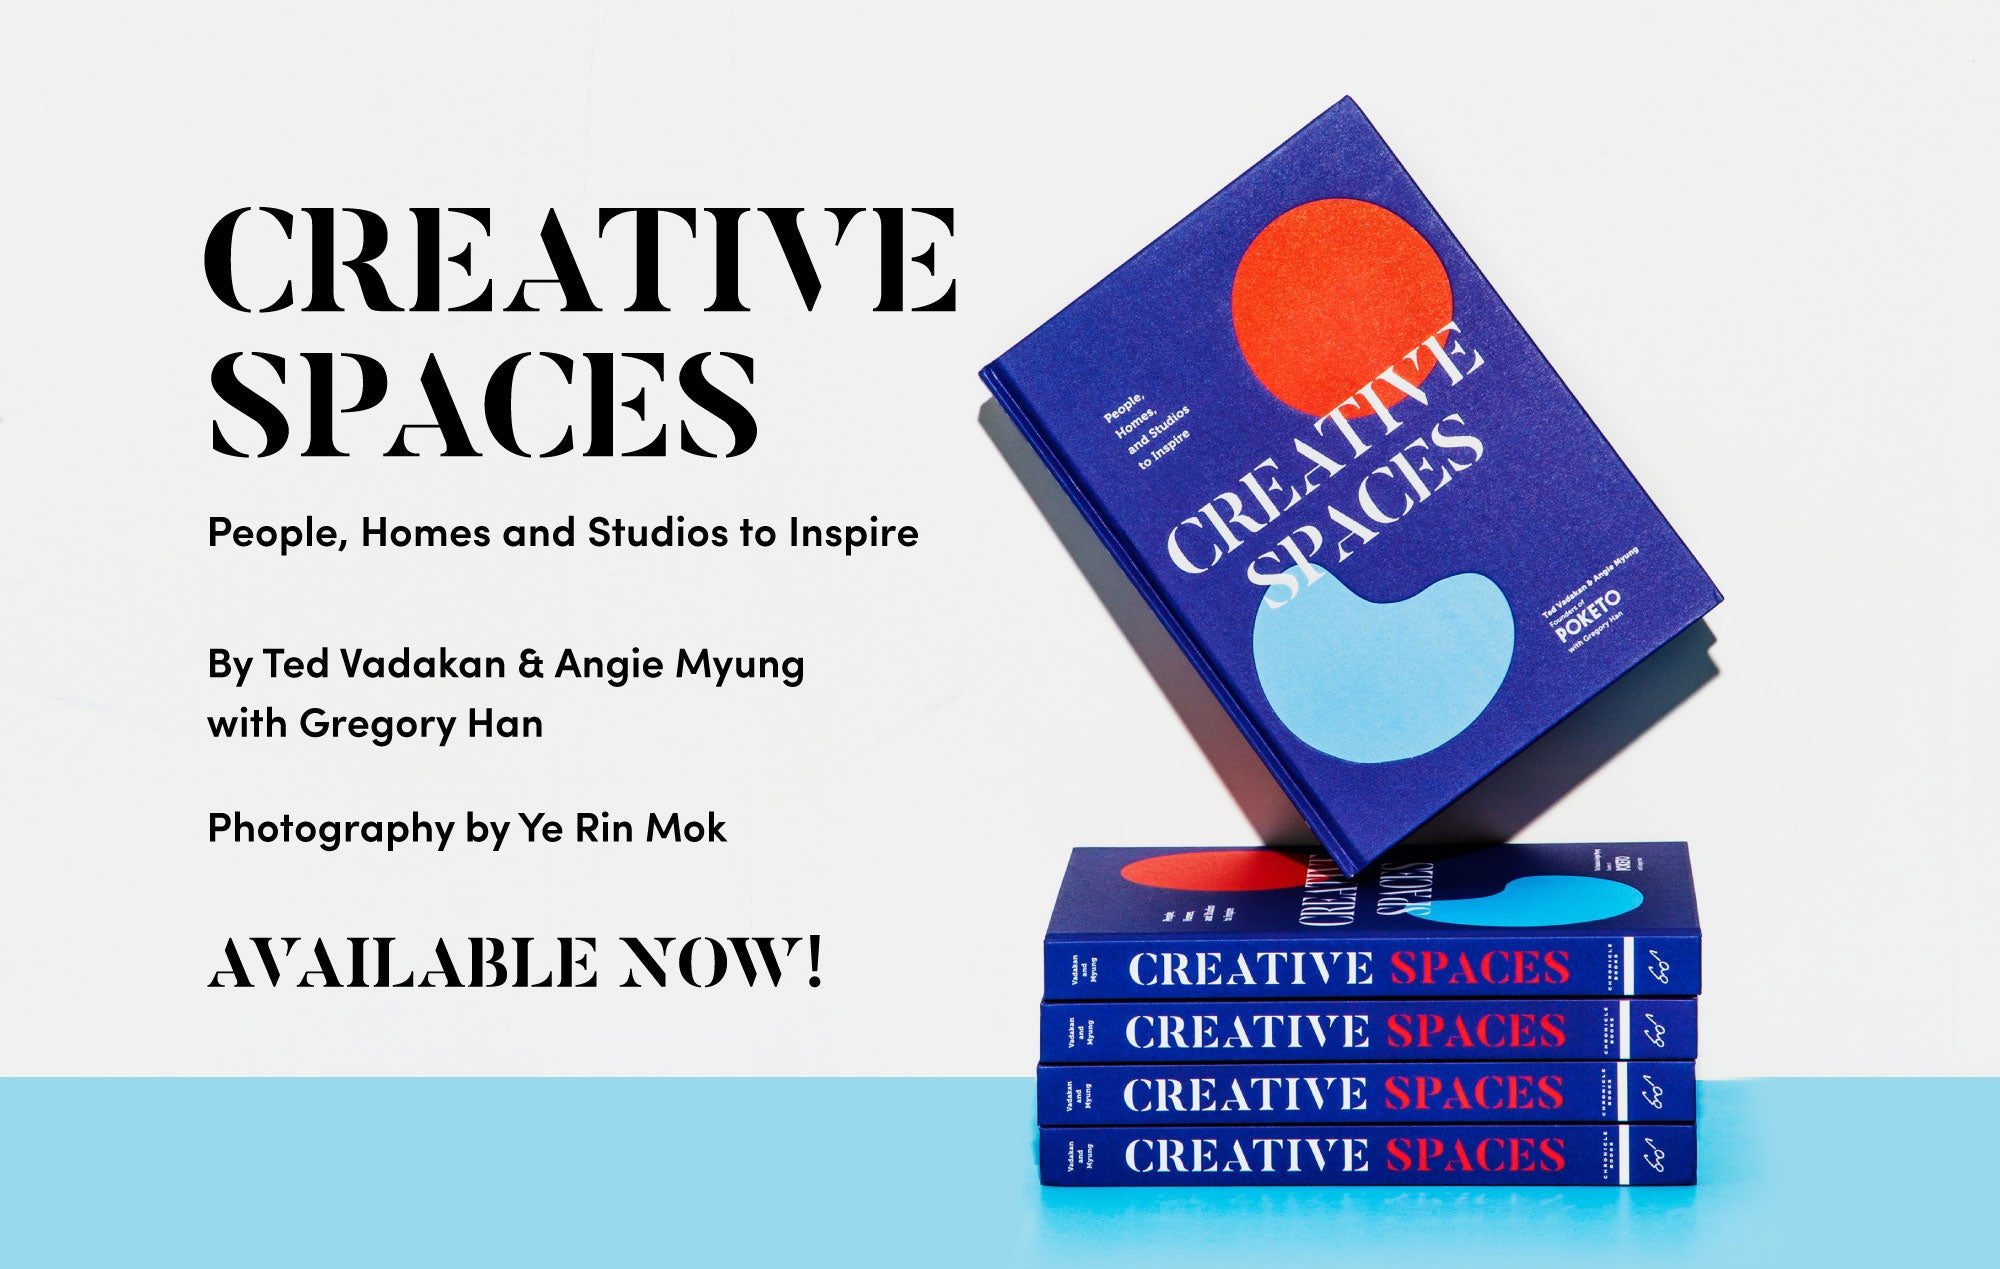 Order Now! Creative Spaces: People, Homes, and Studios to Inpsire. By Ted Vadakan & Angie Myung with Gregory Han, Photographs by Ye Rin Mok. Available August 2019